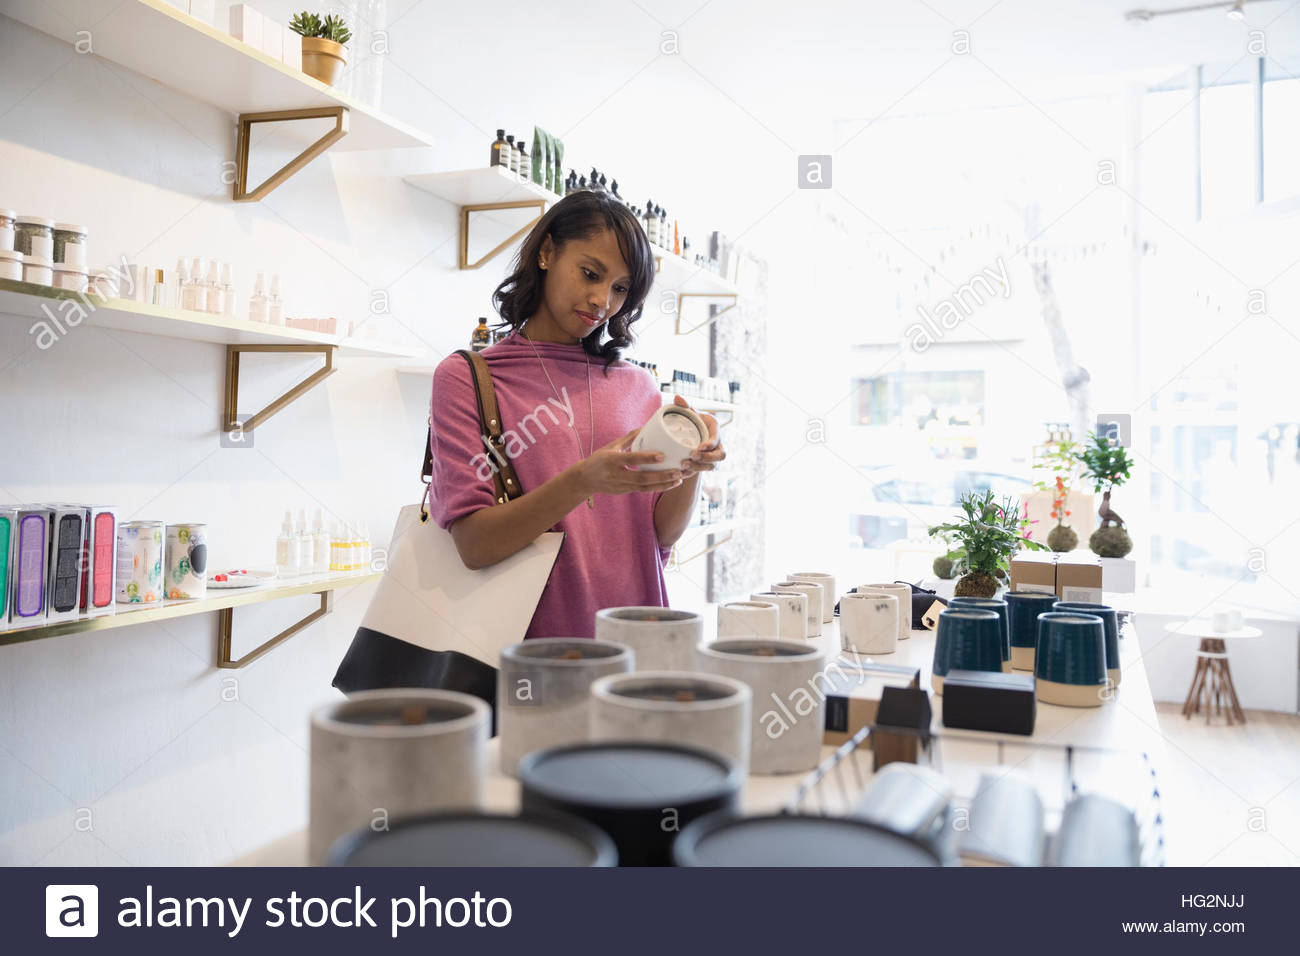 Woman shopping browsing candles in home fragrances shop - Stock Image